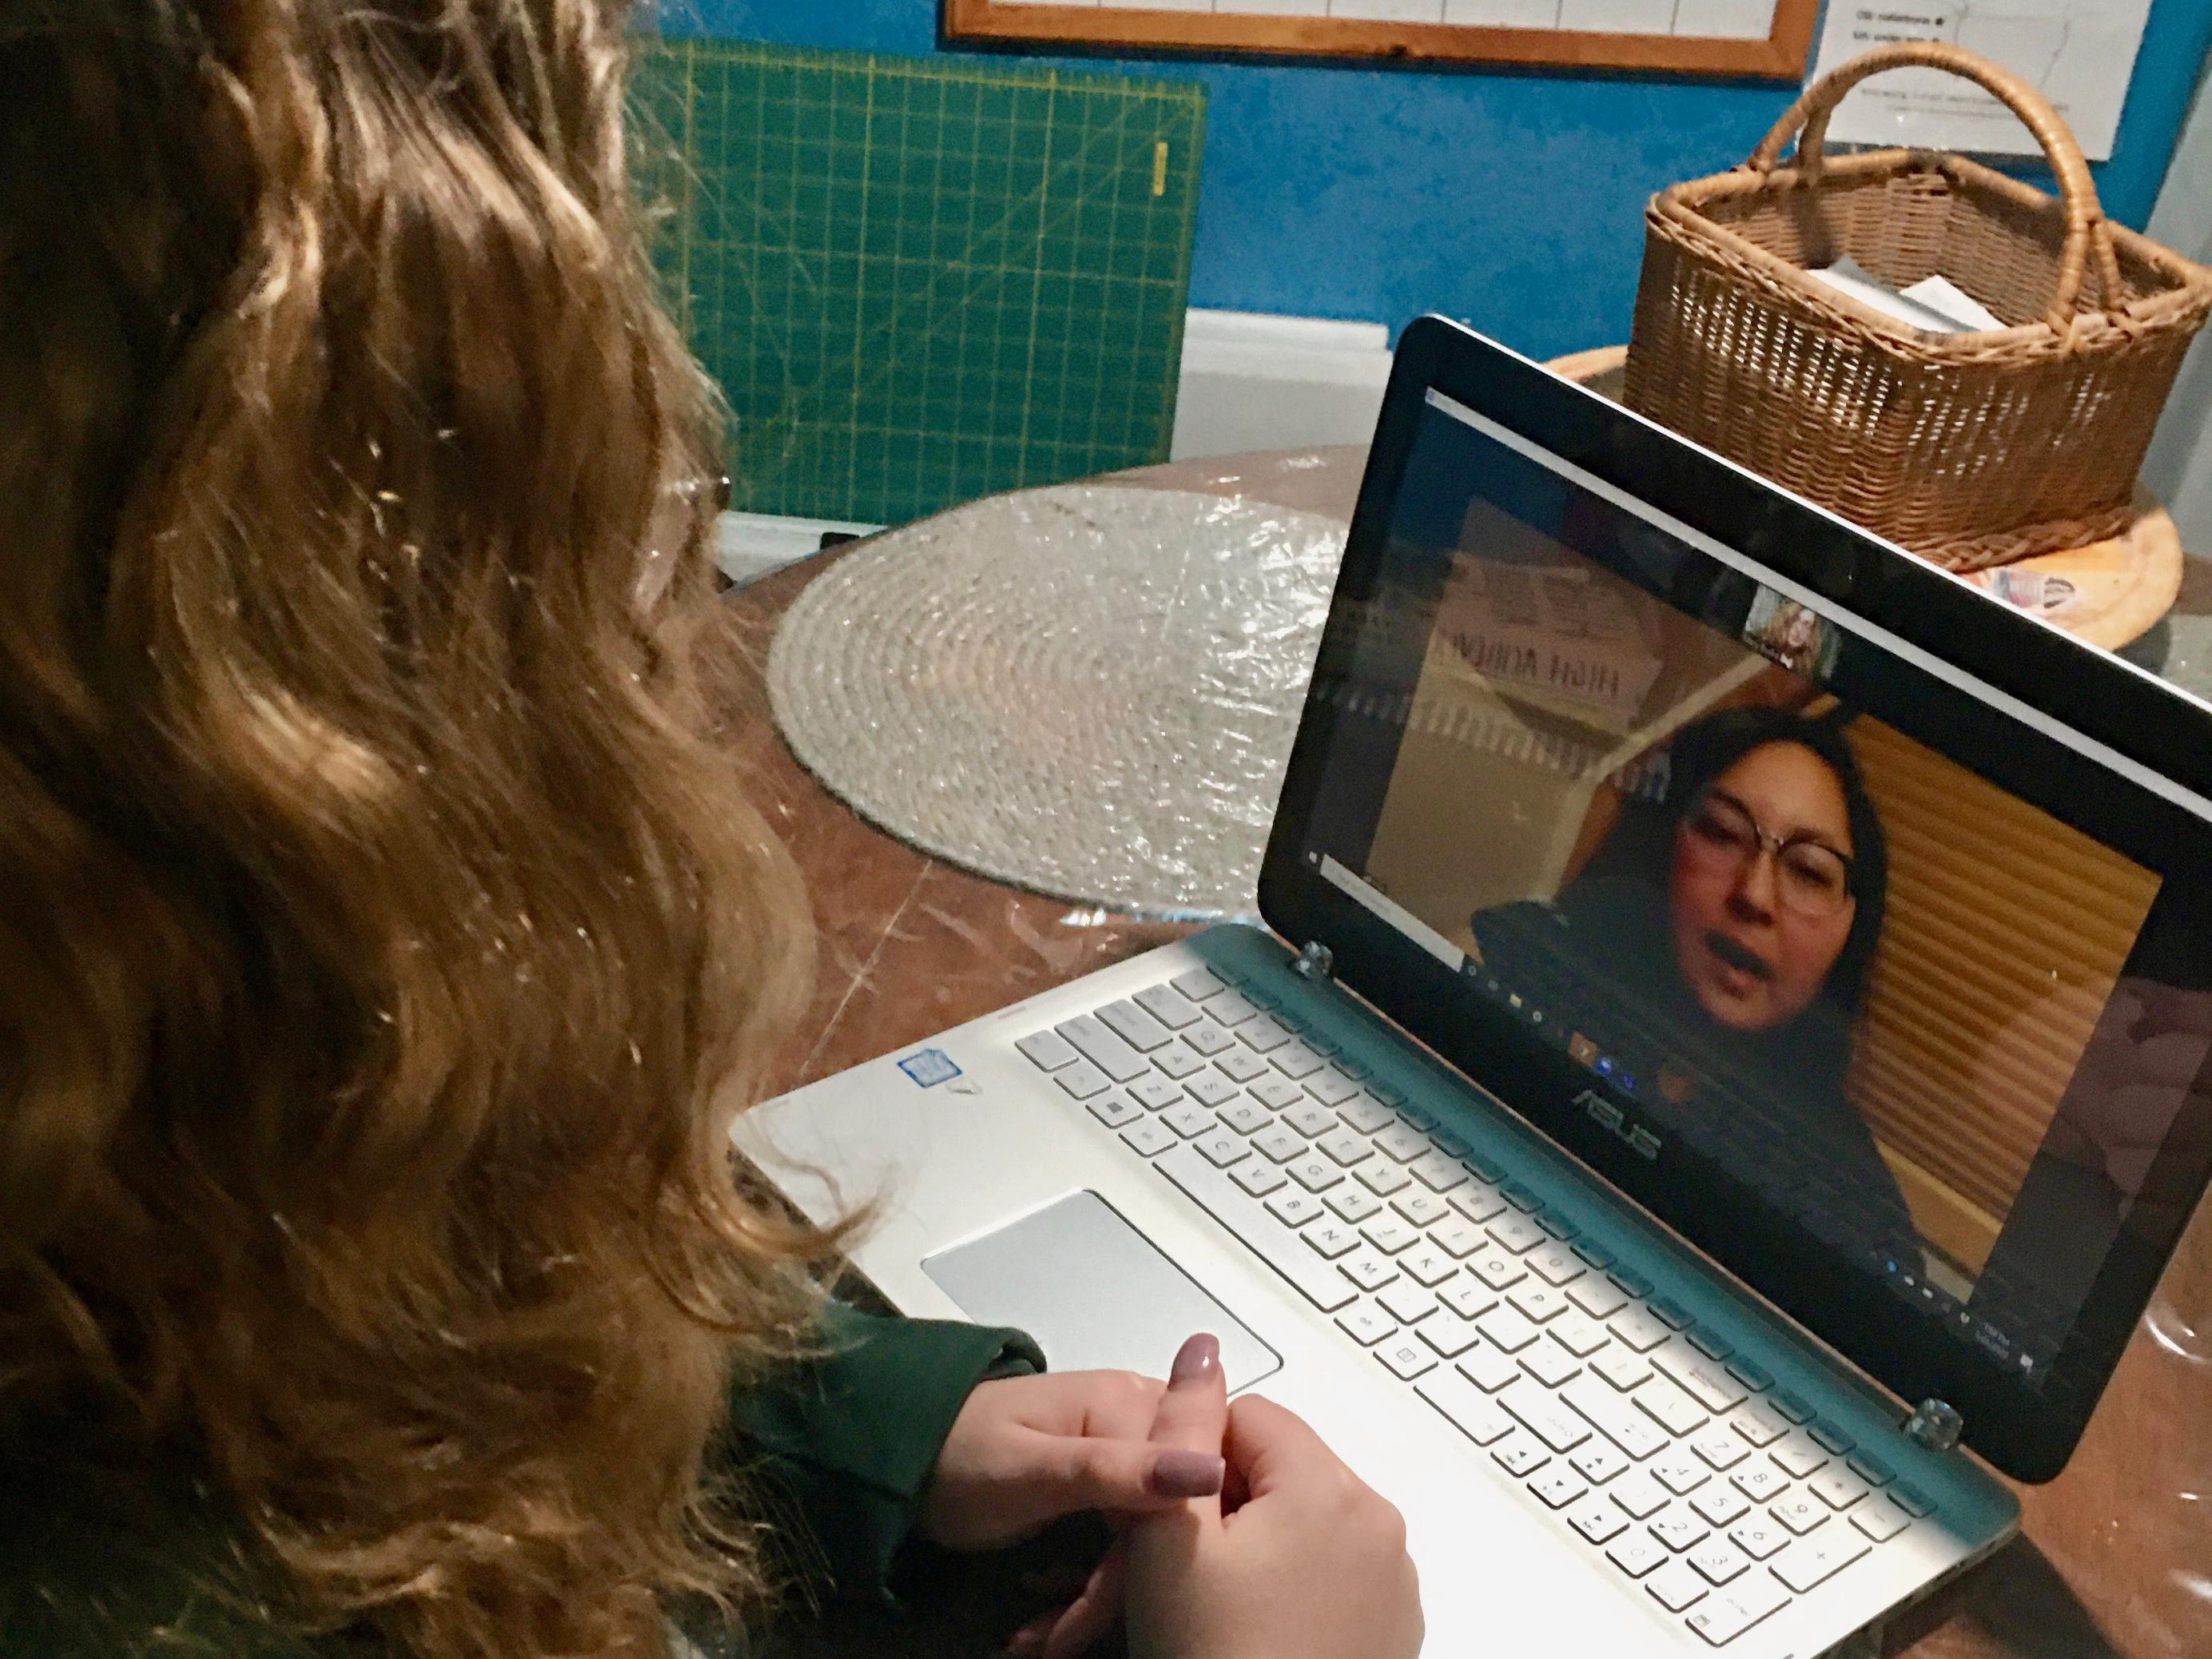 Career Service student Navigators chat remotely